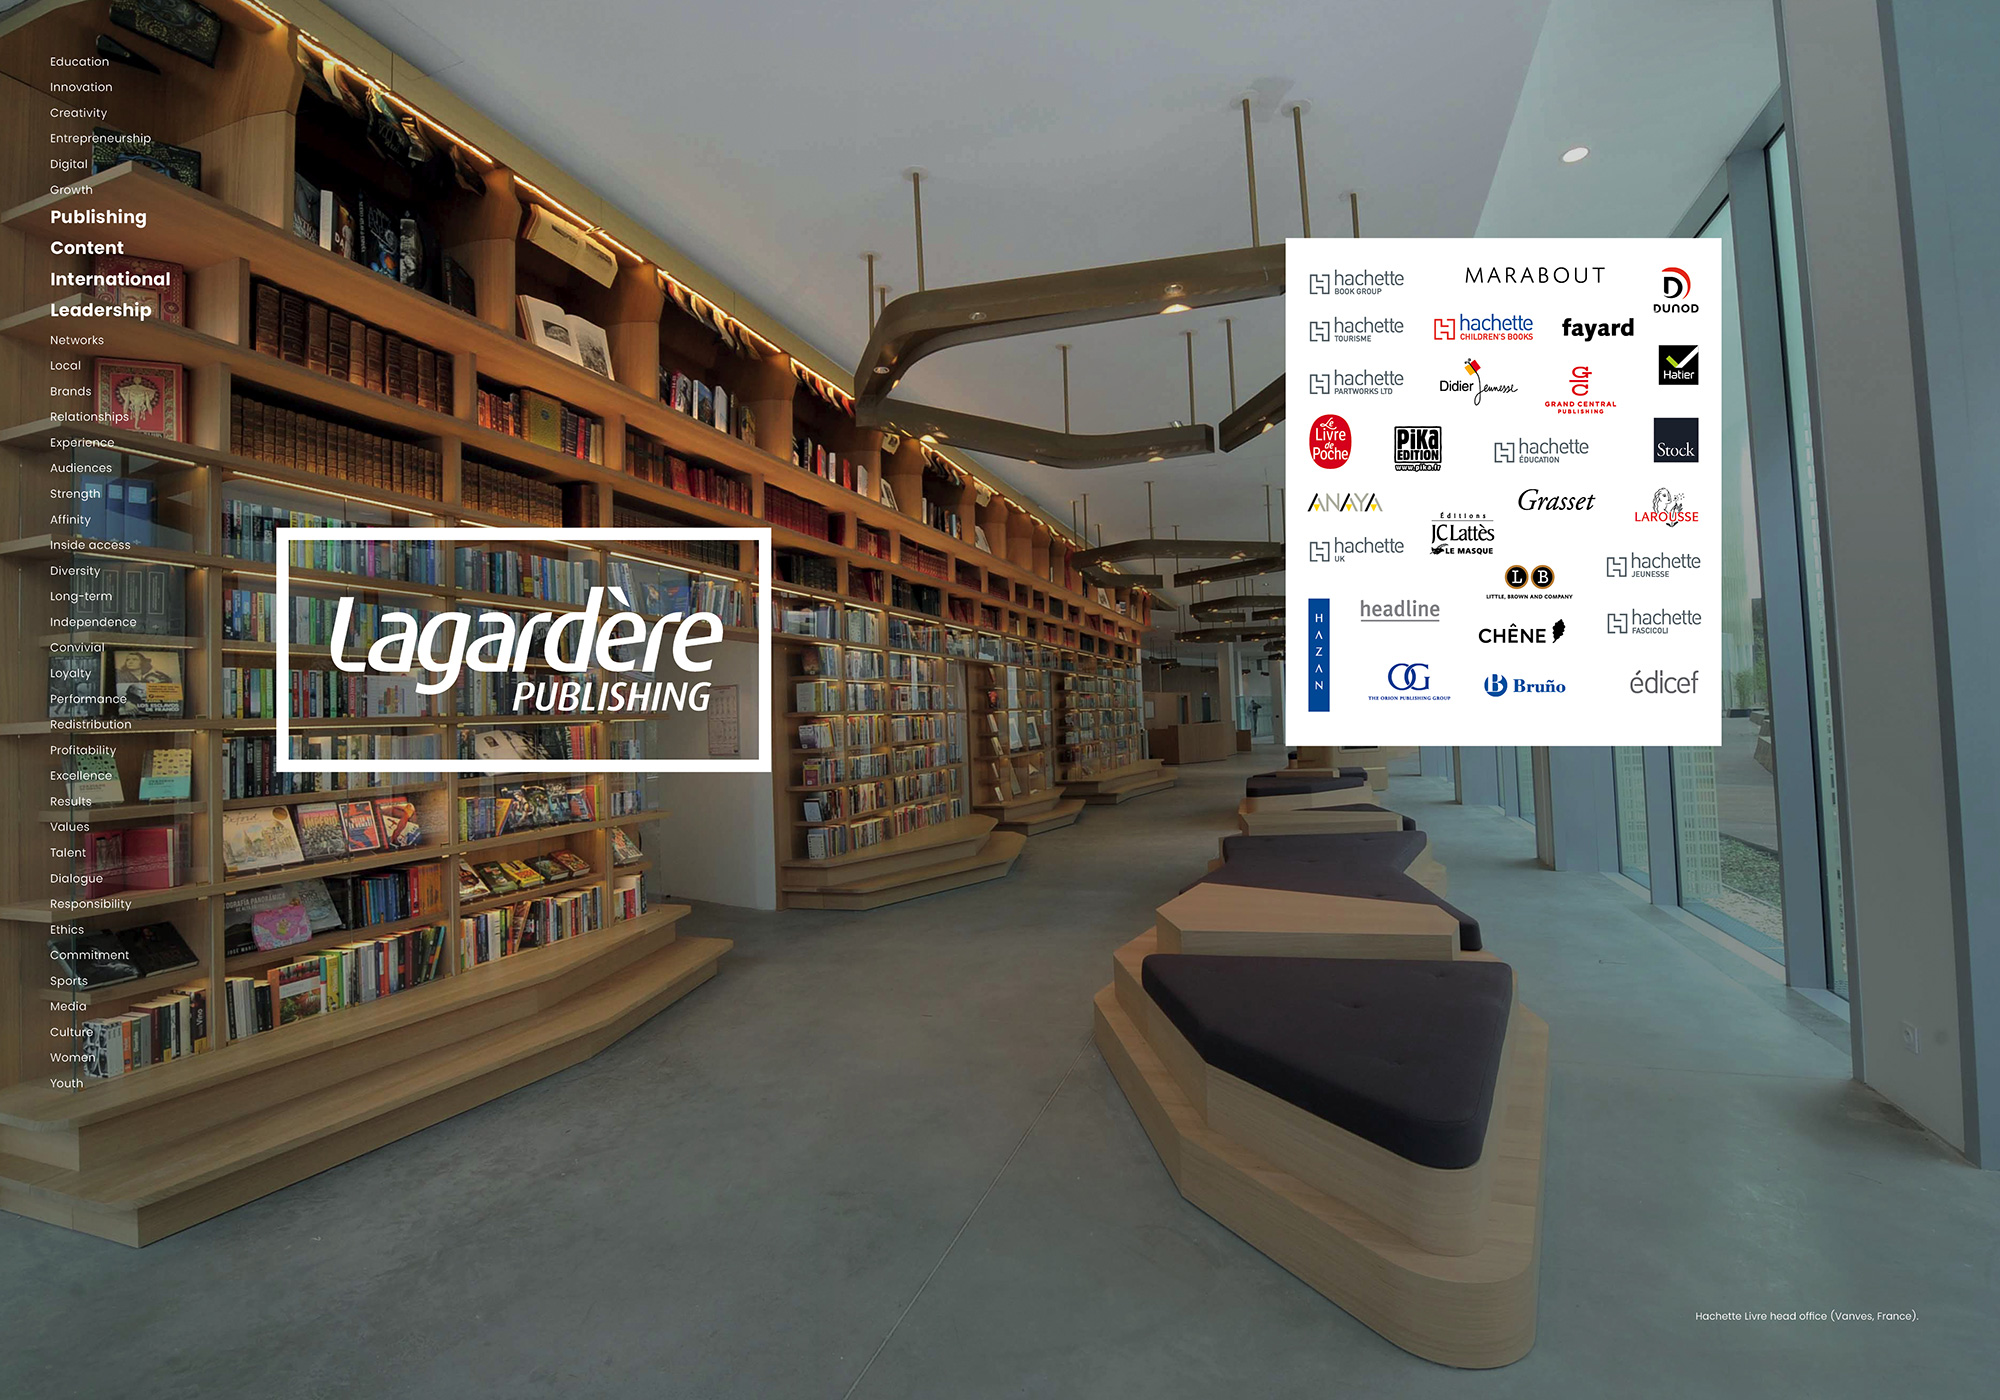 Lagardère Publishing - Hachette Livre head office (Vanves, France).